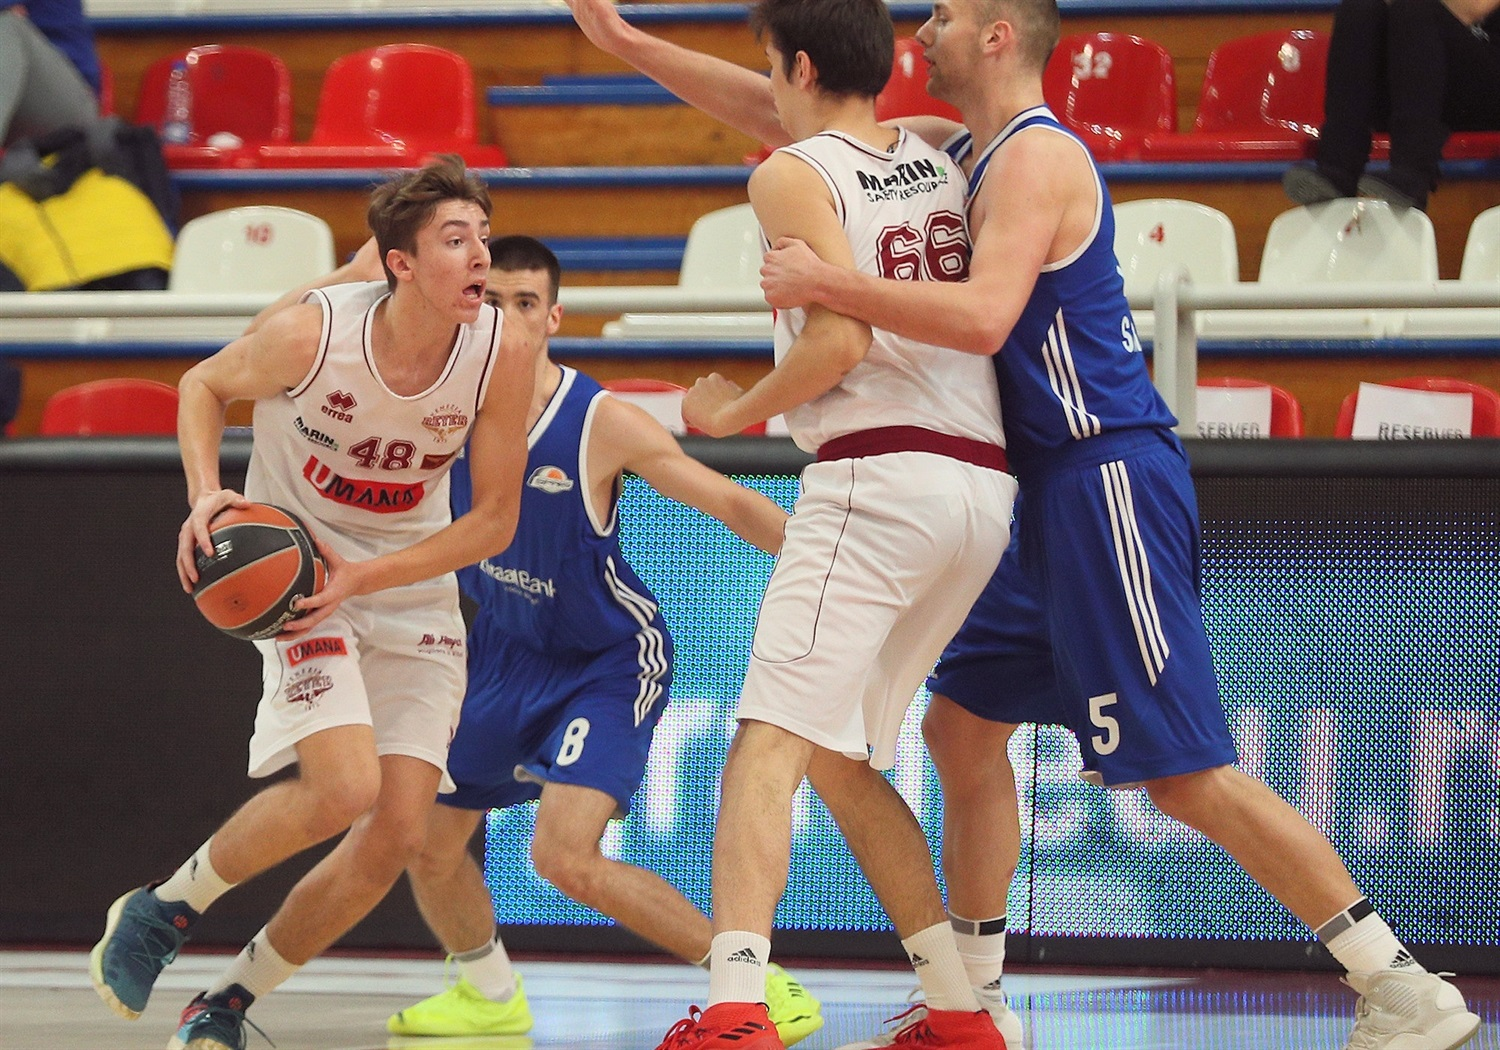 Leonardo Biancotto - U18 Umana Reyer Venice - ANGT Belgrade 2019 (photo Dragoslav Zarkovic) - JT18